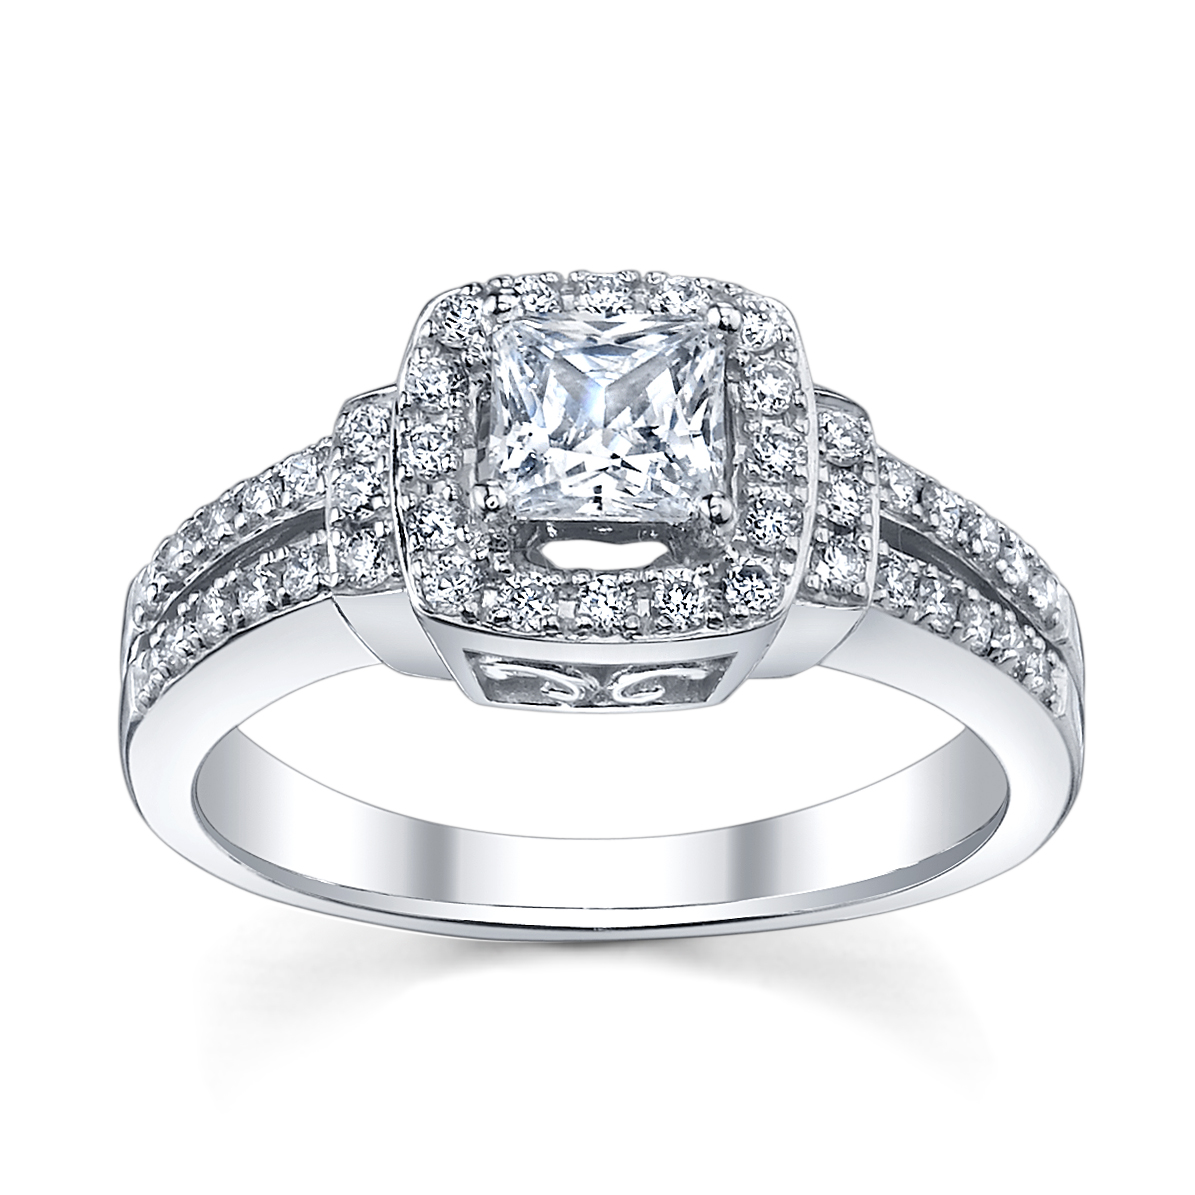 wedding bands ring diamond a rings non engagement her tradition for sets jewellery of from break